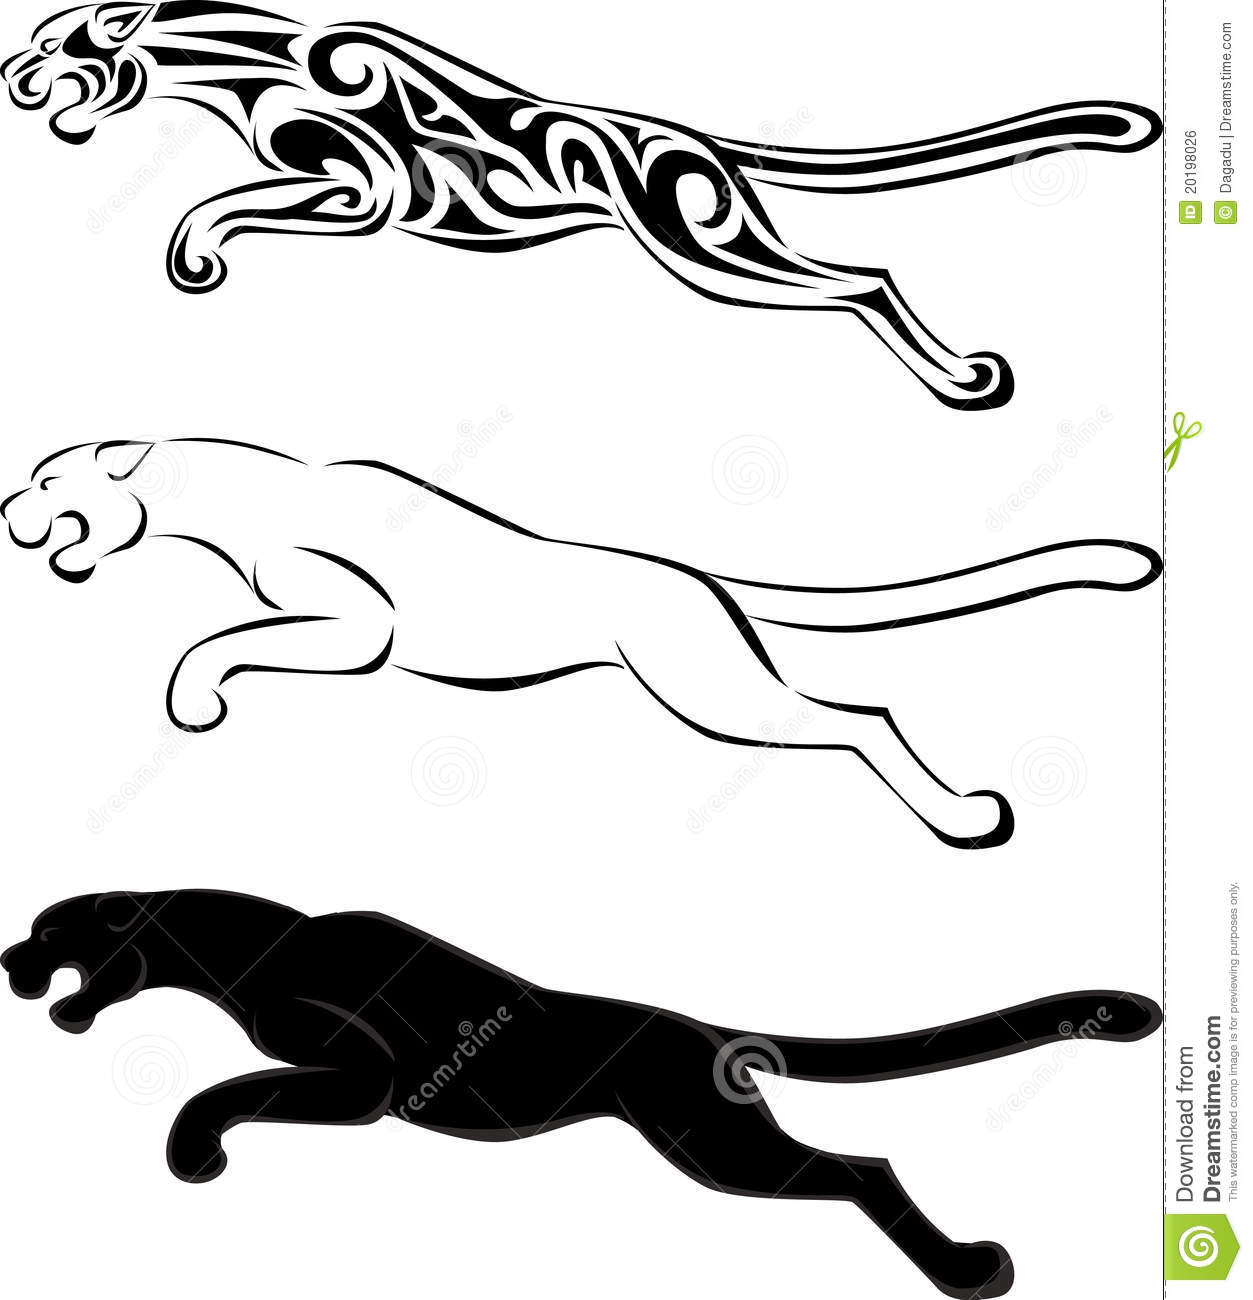 Tiger Tribal Tattoo And Silhouette Stock Vector